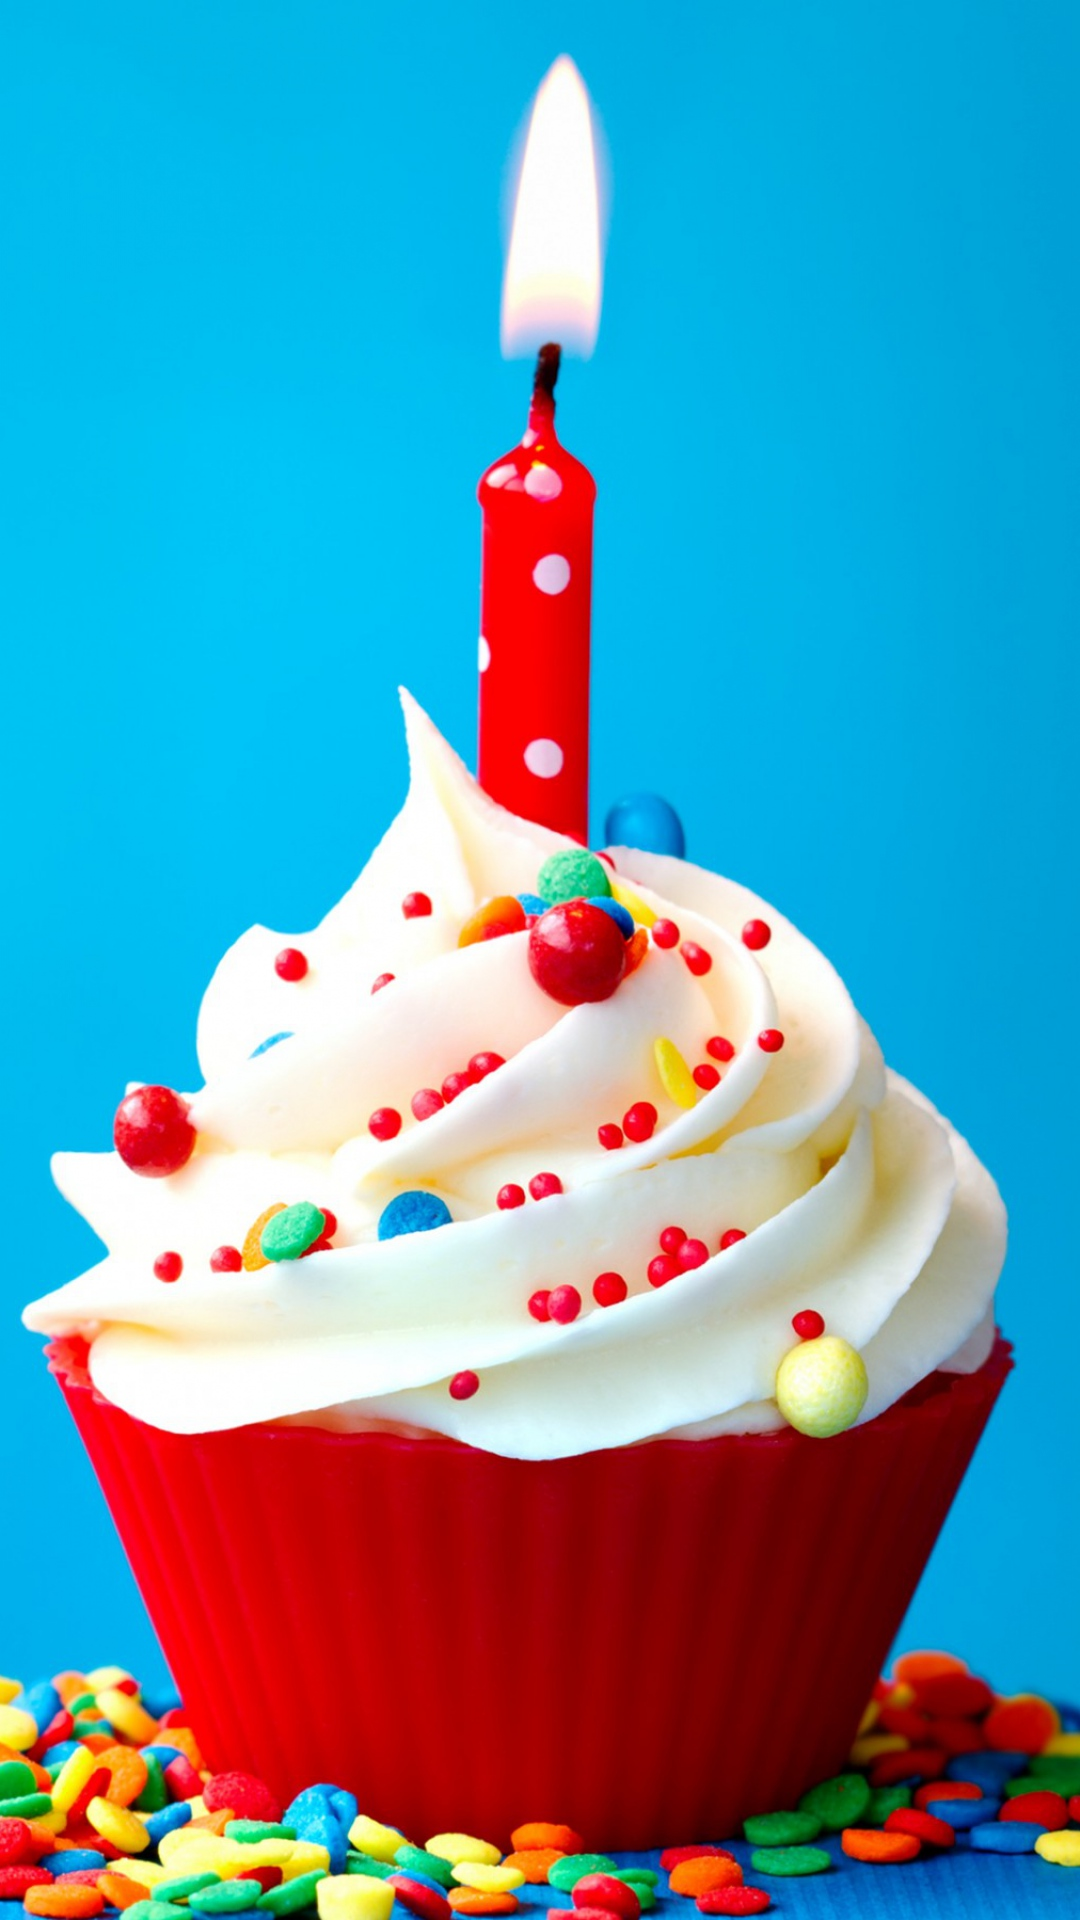 Birthday Cake Wallpaper Free Download